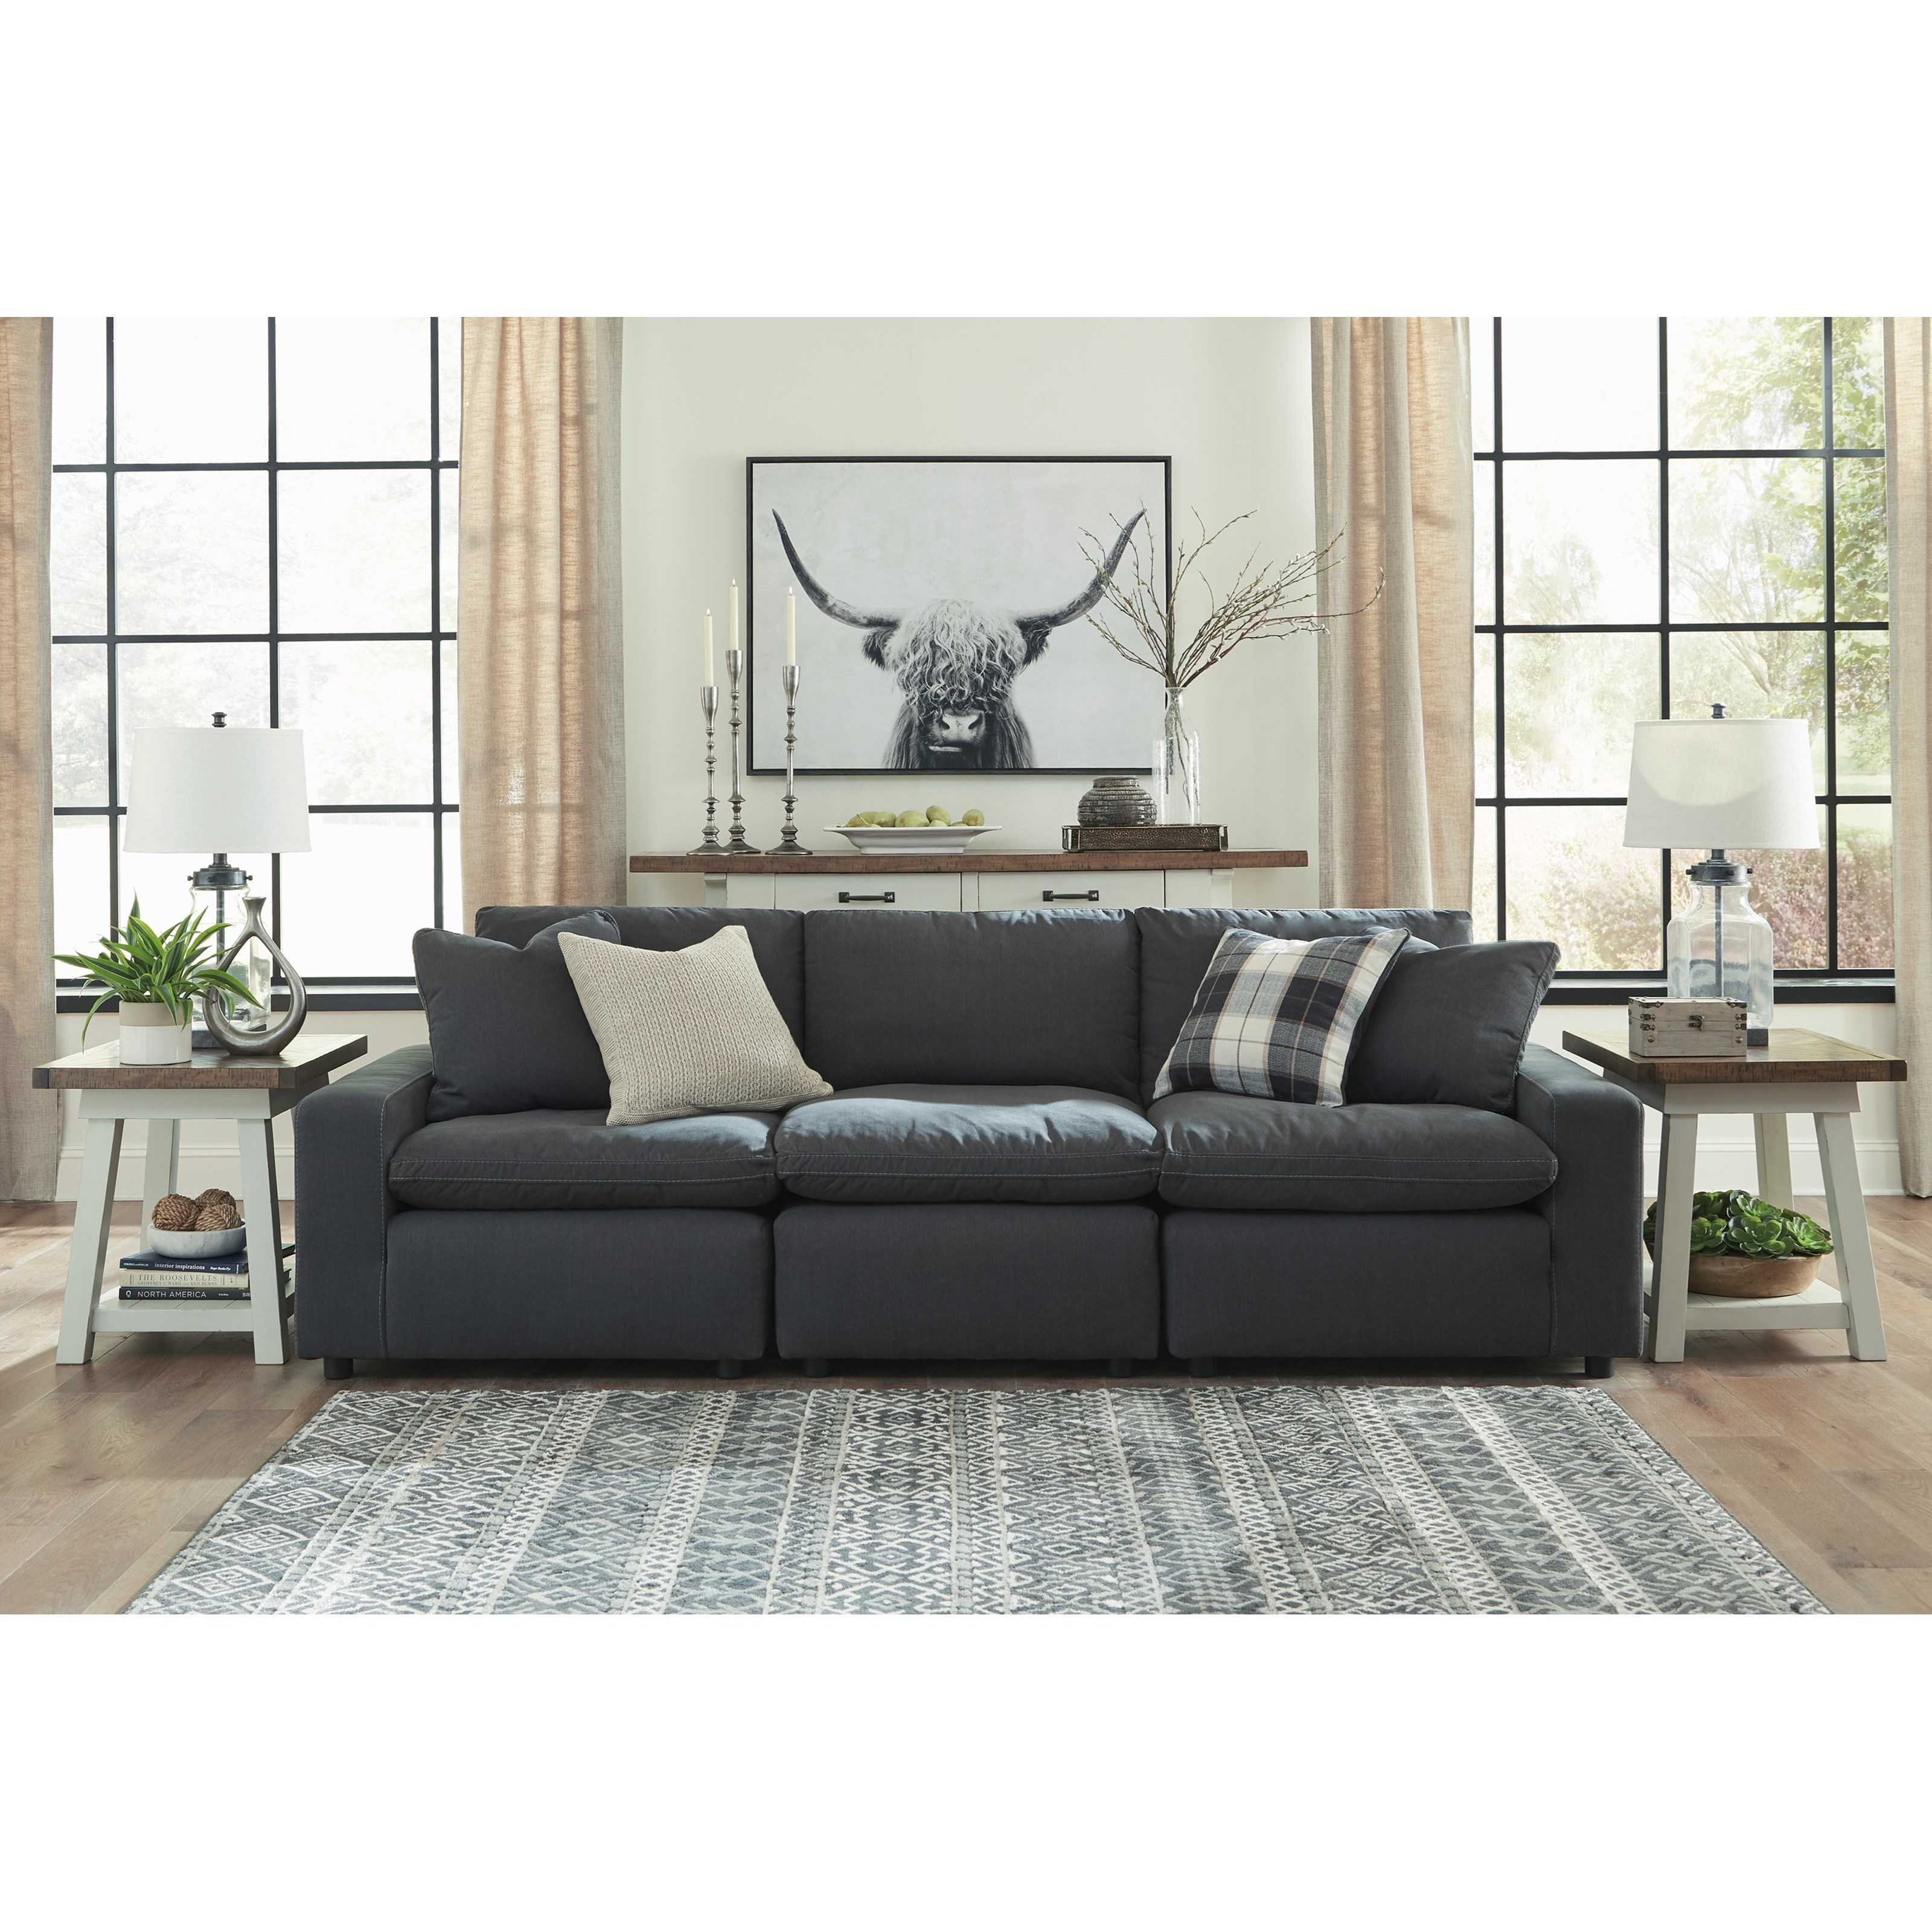 Savesto Sofa by Signature Design by Ashley at Household Furniture